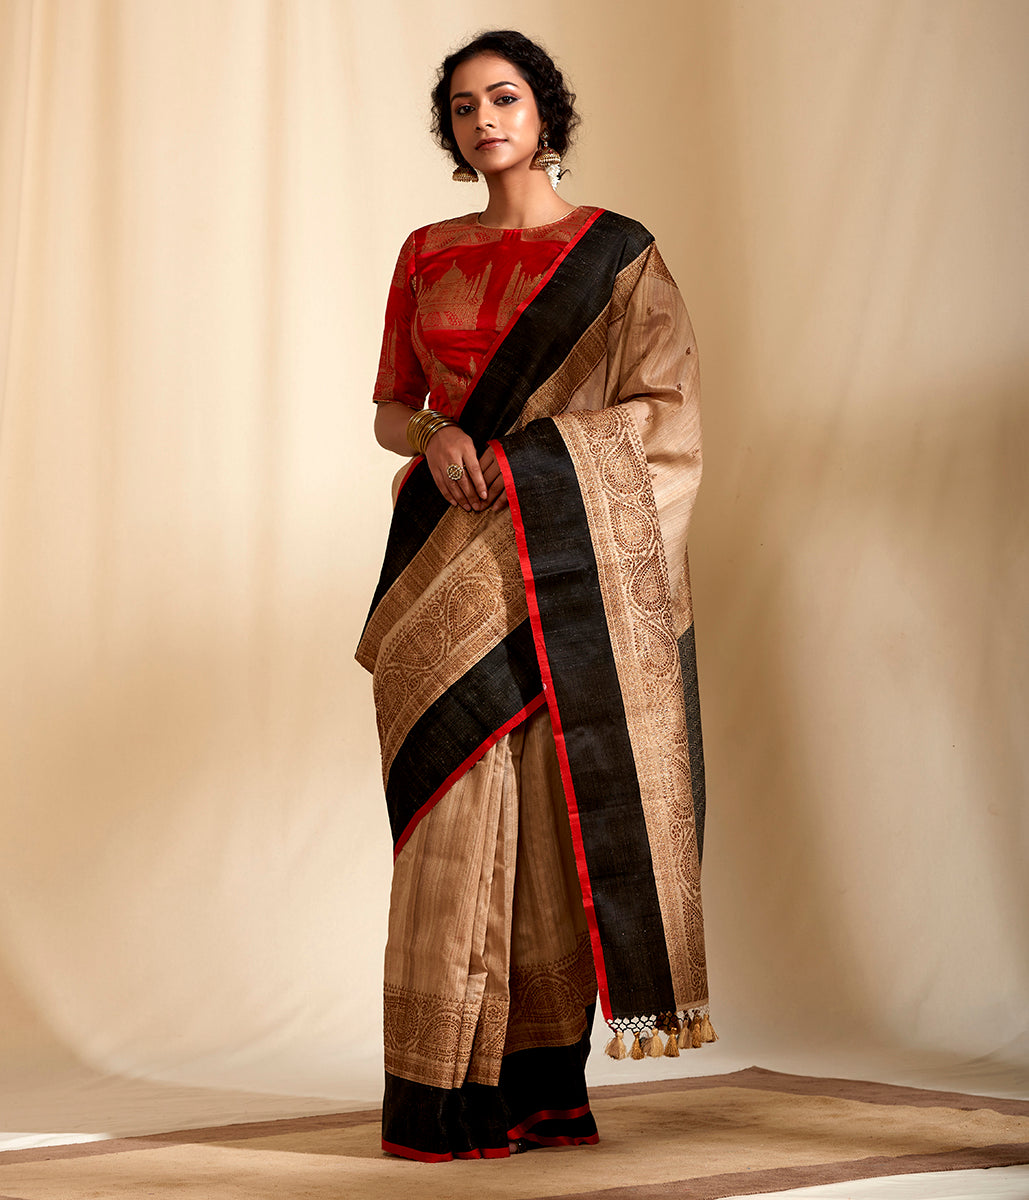 Handwoven banarasi tusser saree with kadhwa boota woven in antique zari and a black border